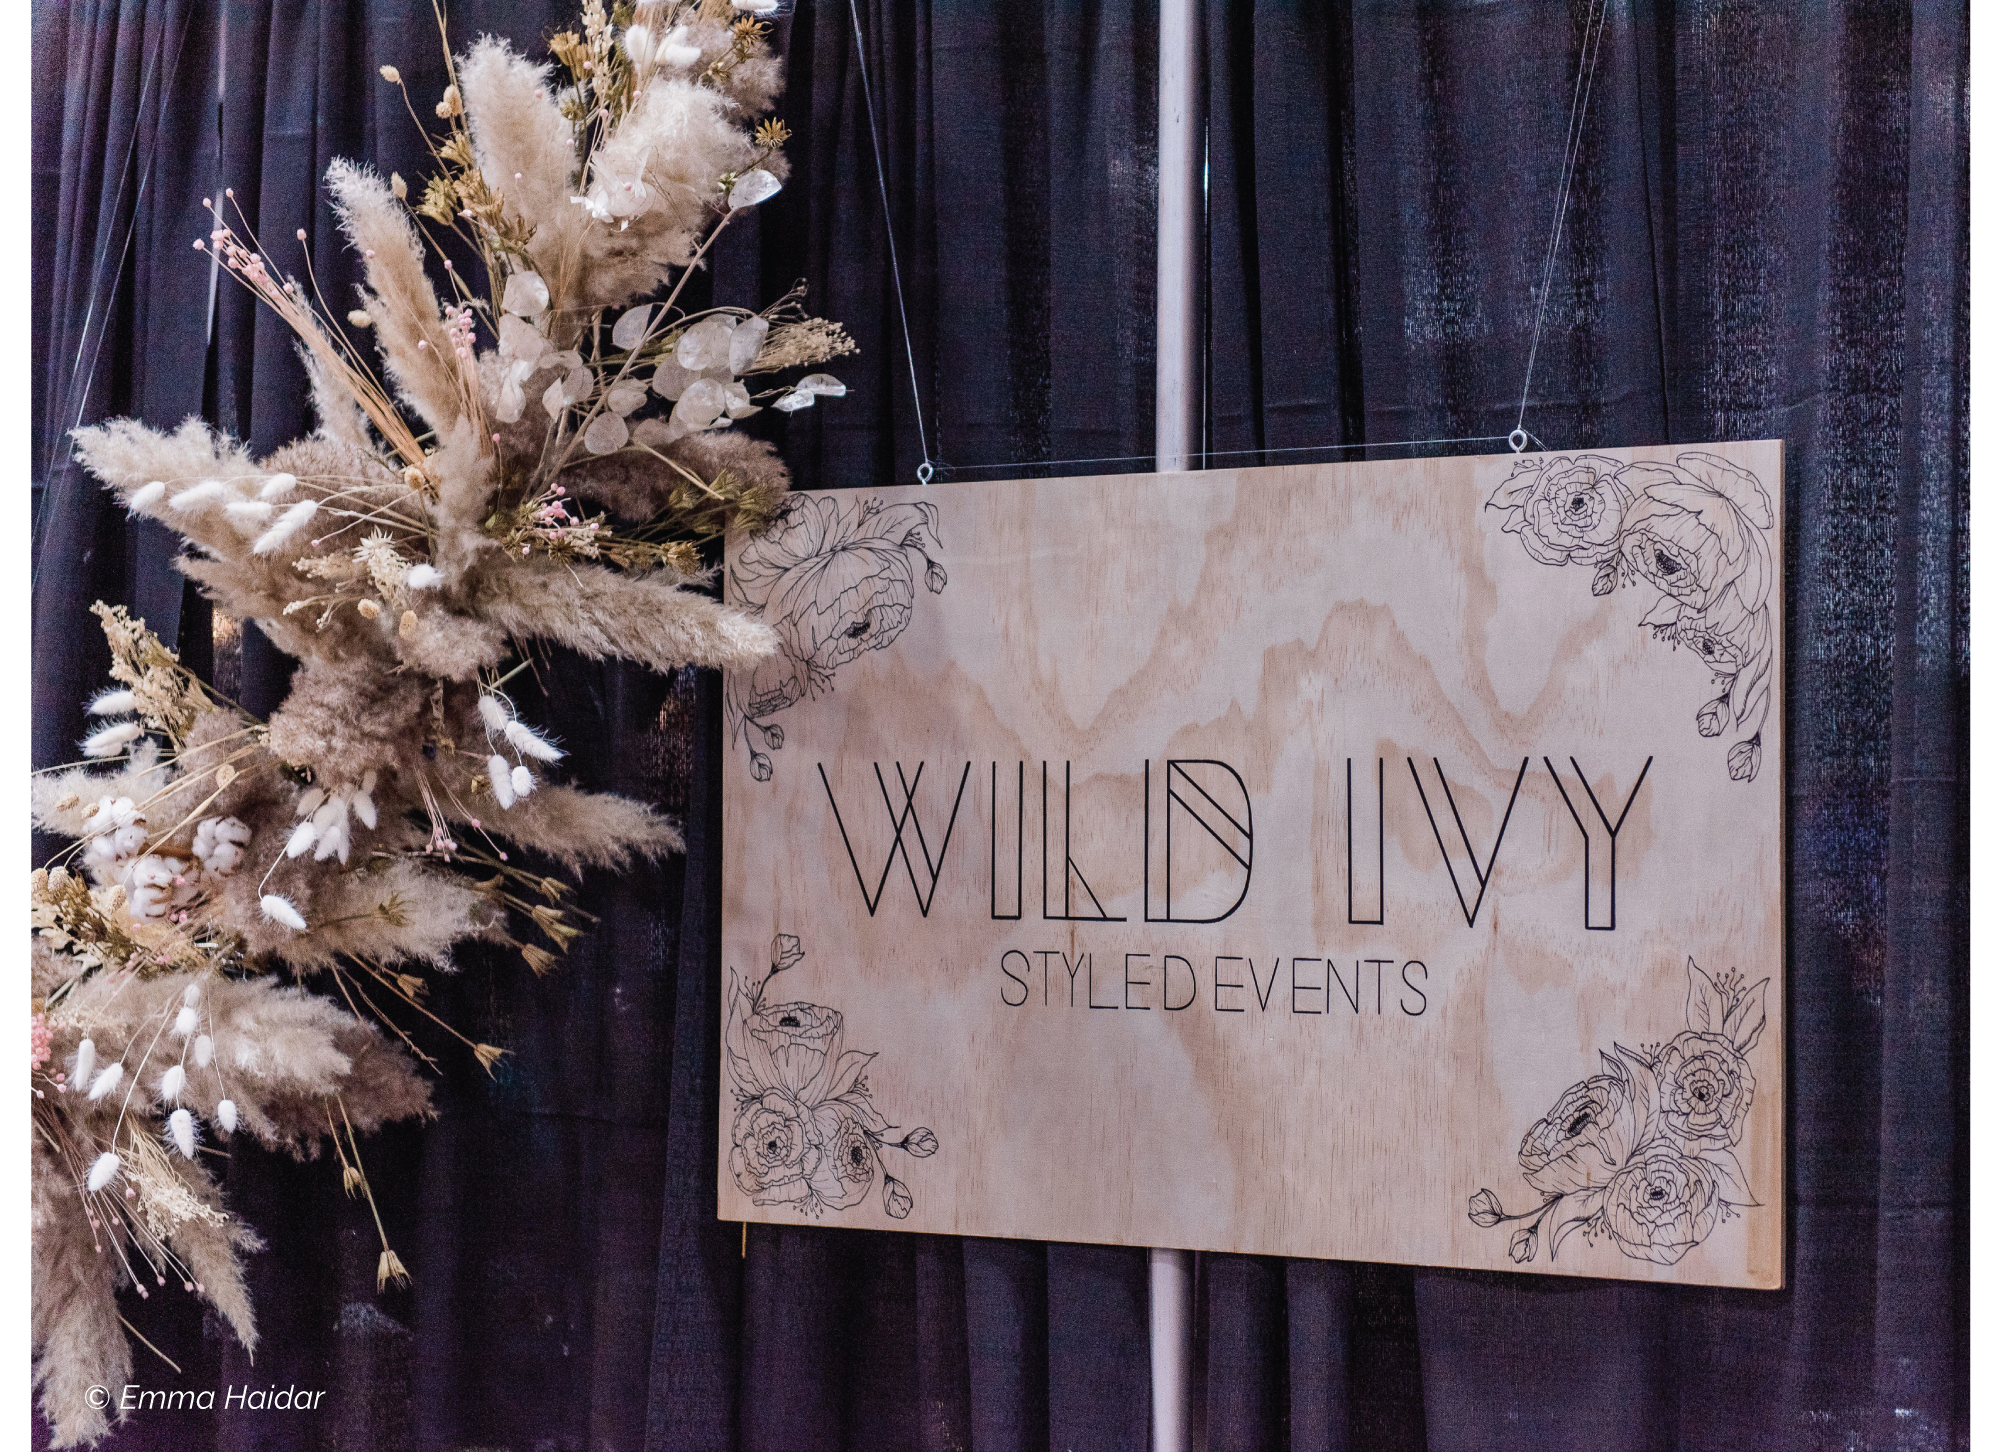 Brand-Sign-Logo-Wild-Ivy-Events-Padded.jpg